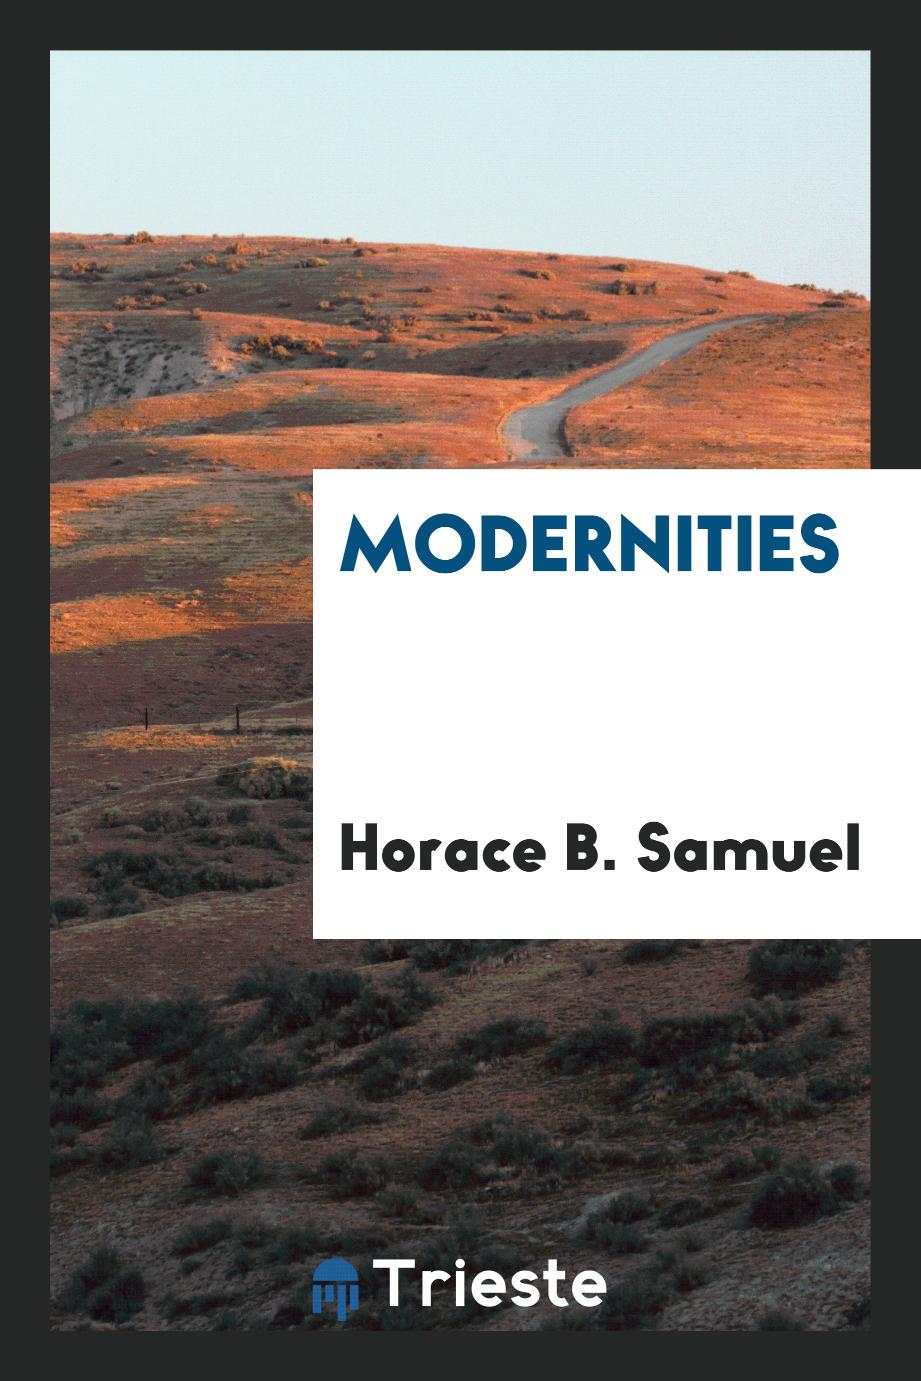 Horace B. Samuel - Modernities